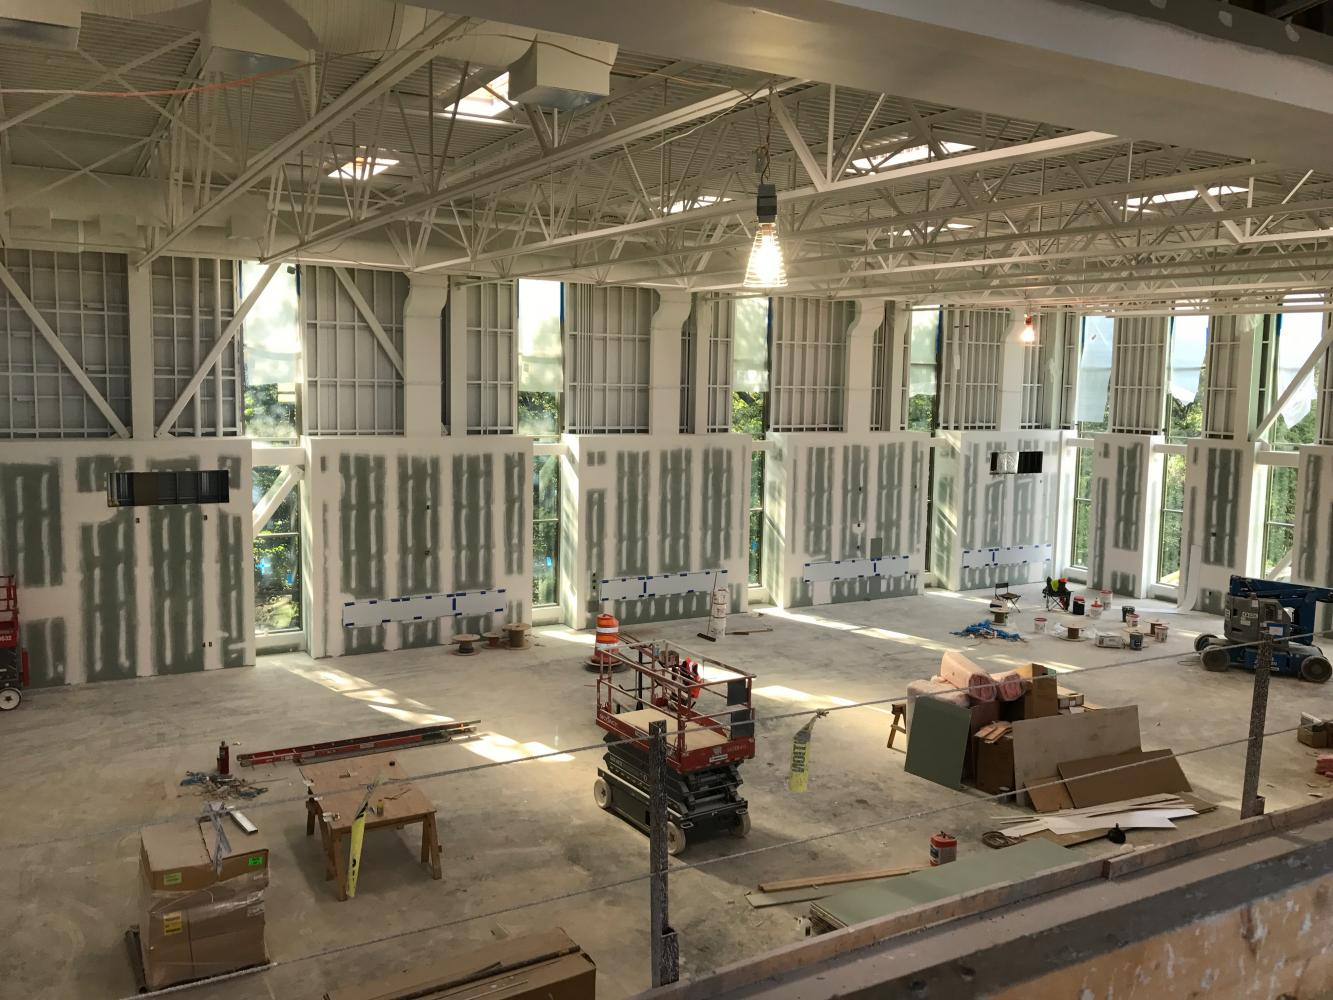 The interior framework of the facility has been finished since the beginning of summer, but there is still quite a ways to go before the building will be completed